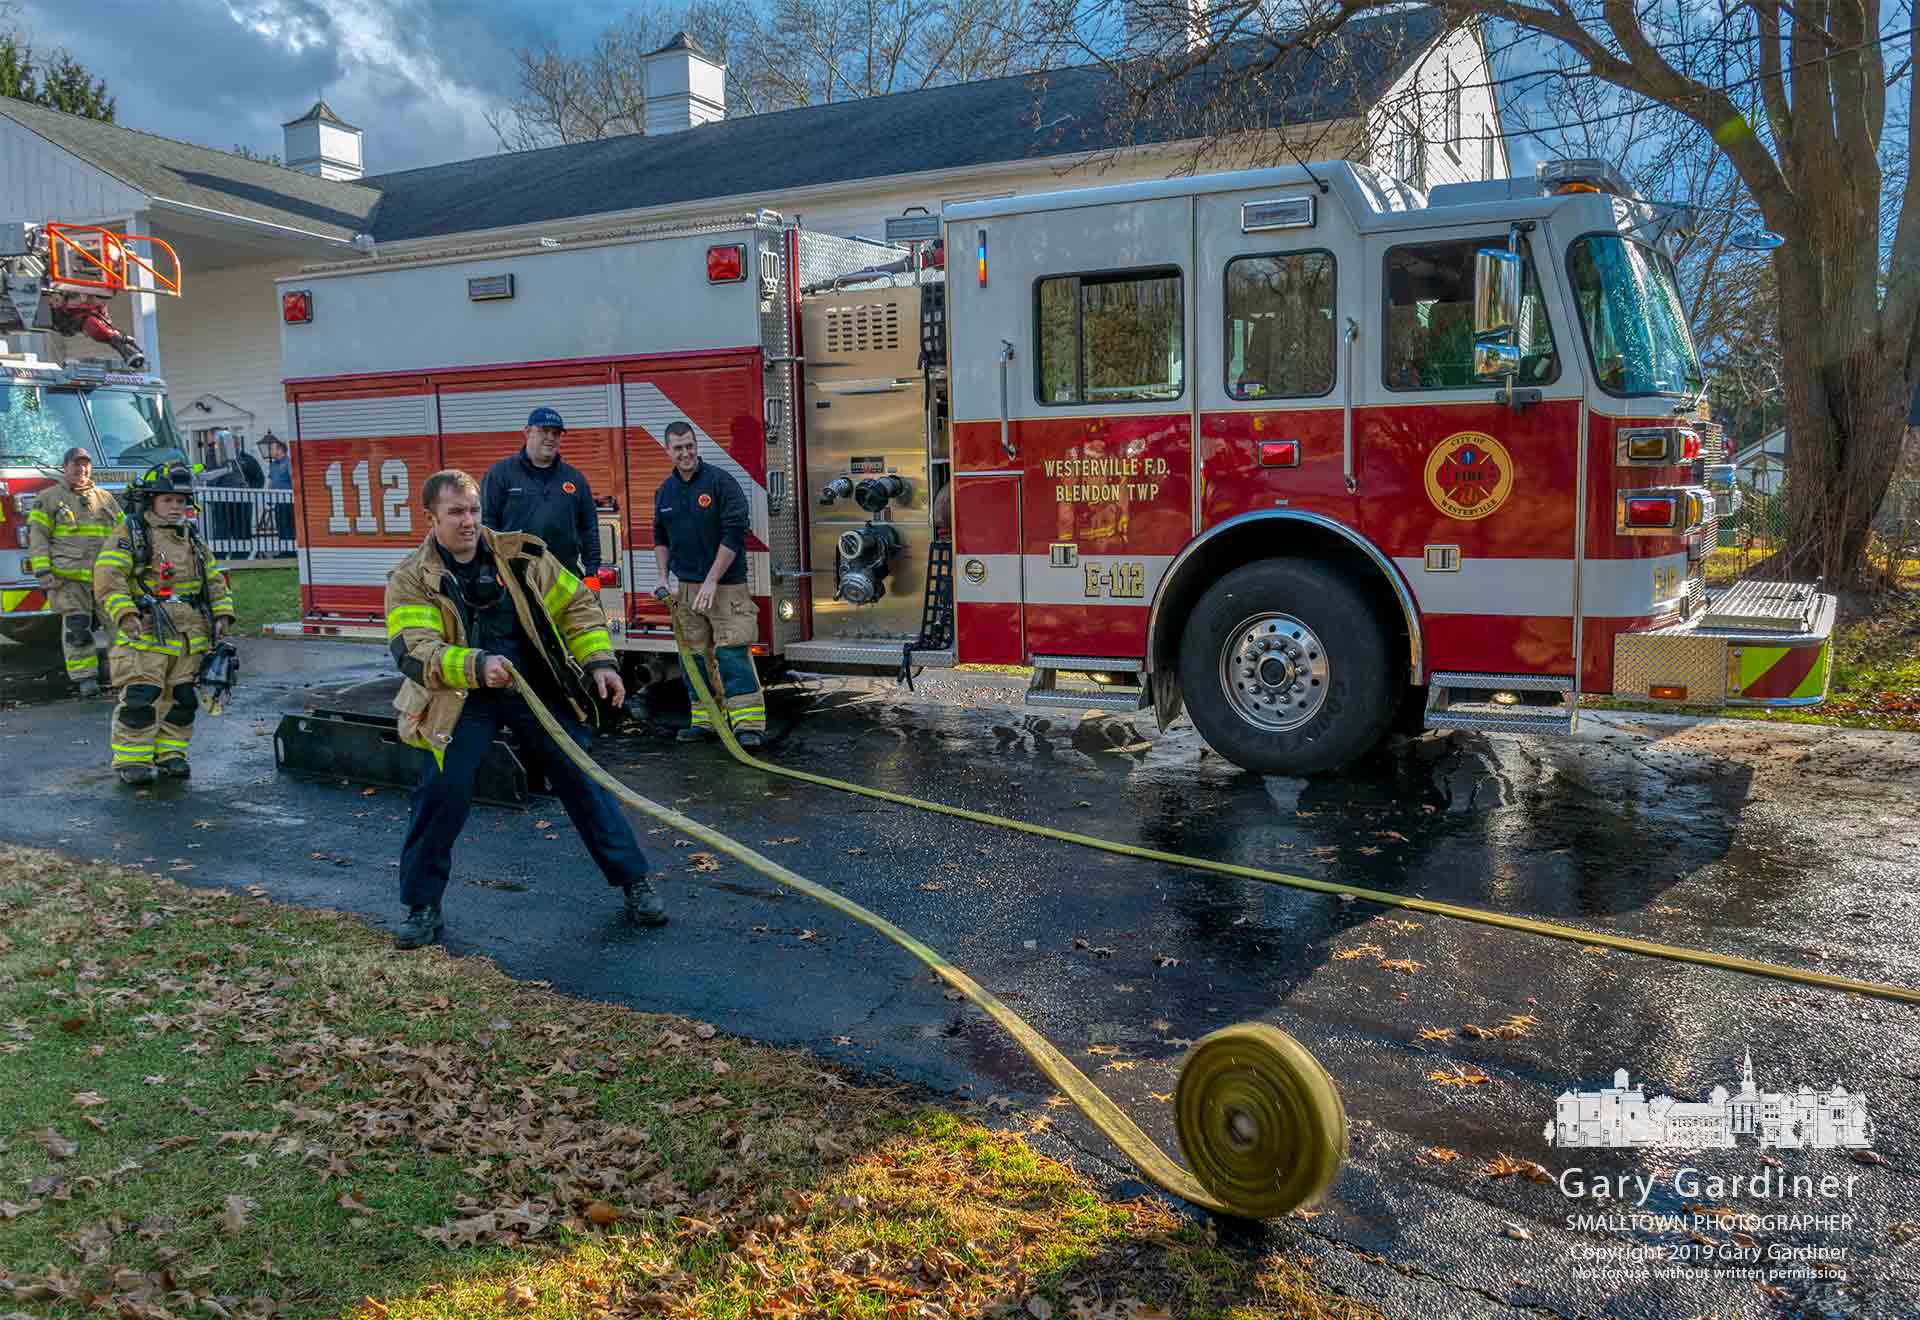 Firefighters roll out hoses preparing them for storage after completing a training program at the old party house on the future park property on Hempstead Road. My Final Photo for Jan. 8, 2019.